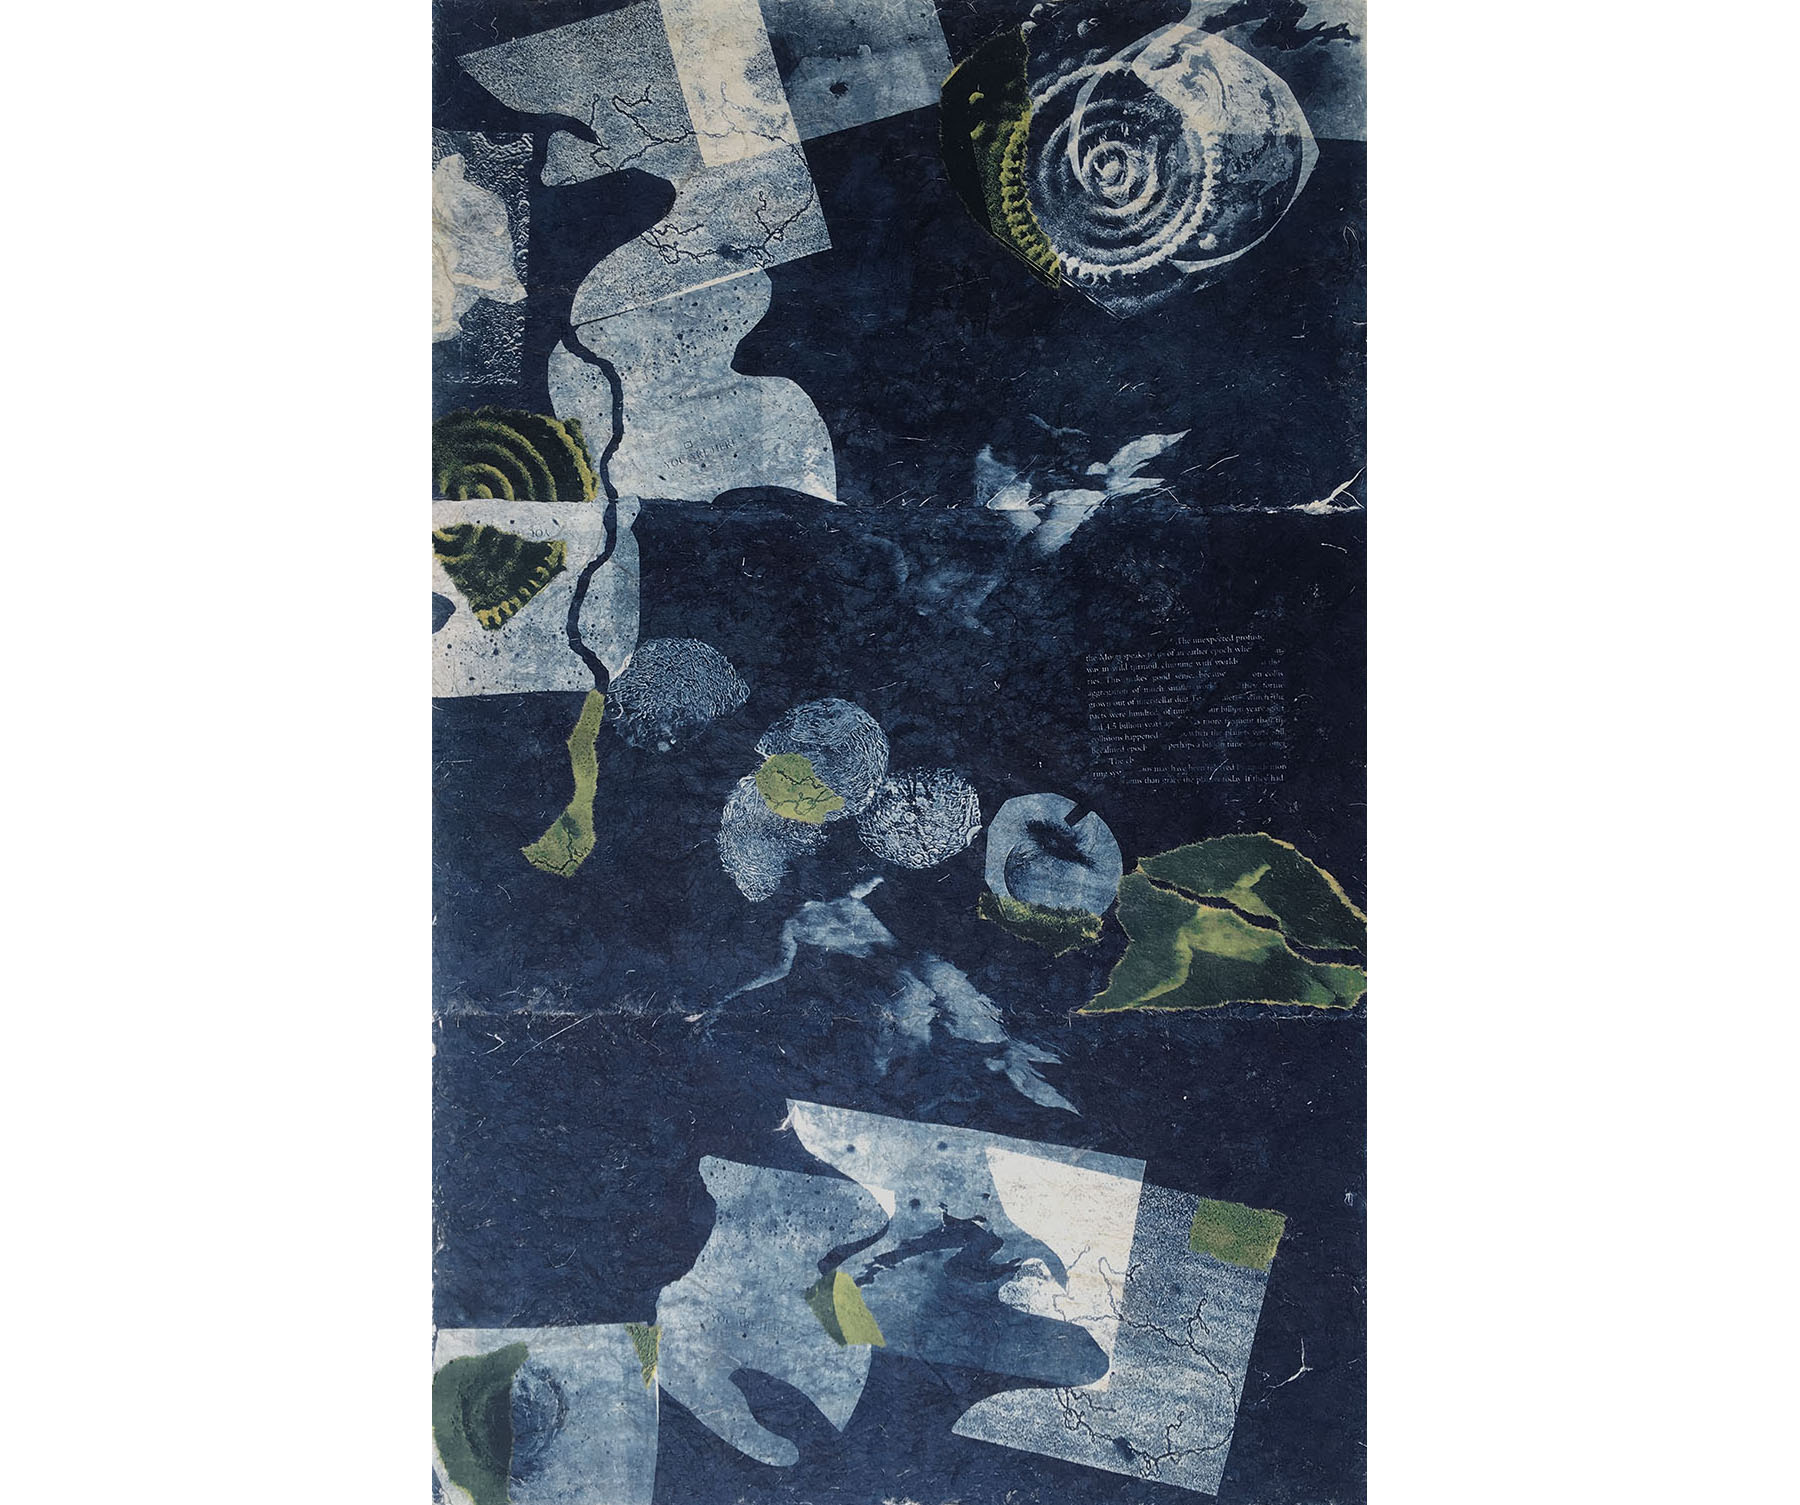 The Unexpected Profusion (You Are Here), 1997, Cyanotype with Chine Colle on Rice Paper, 44 x 24